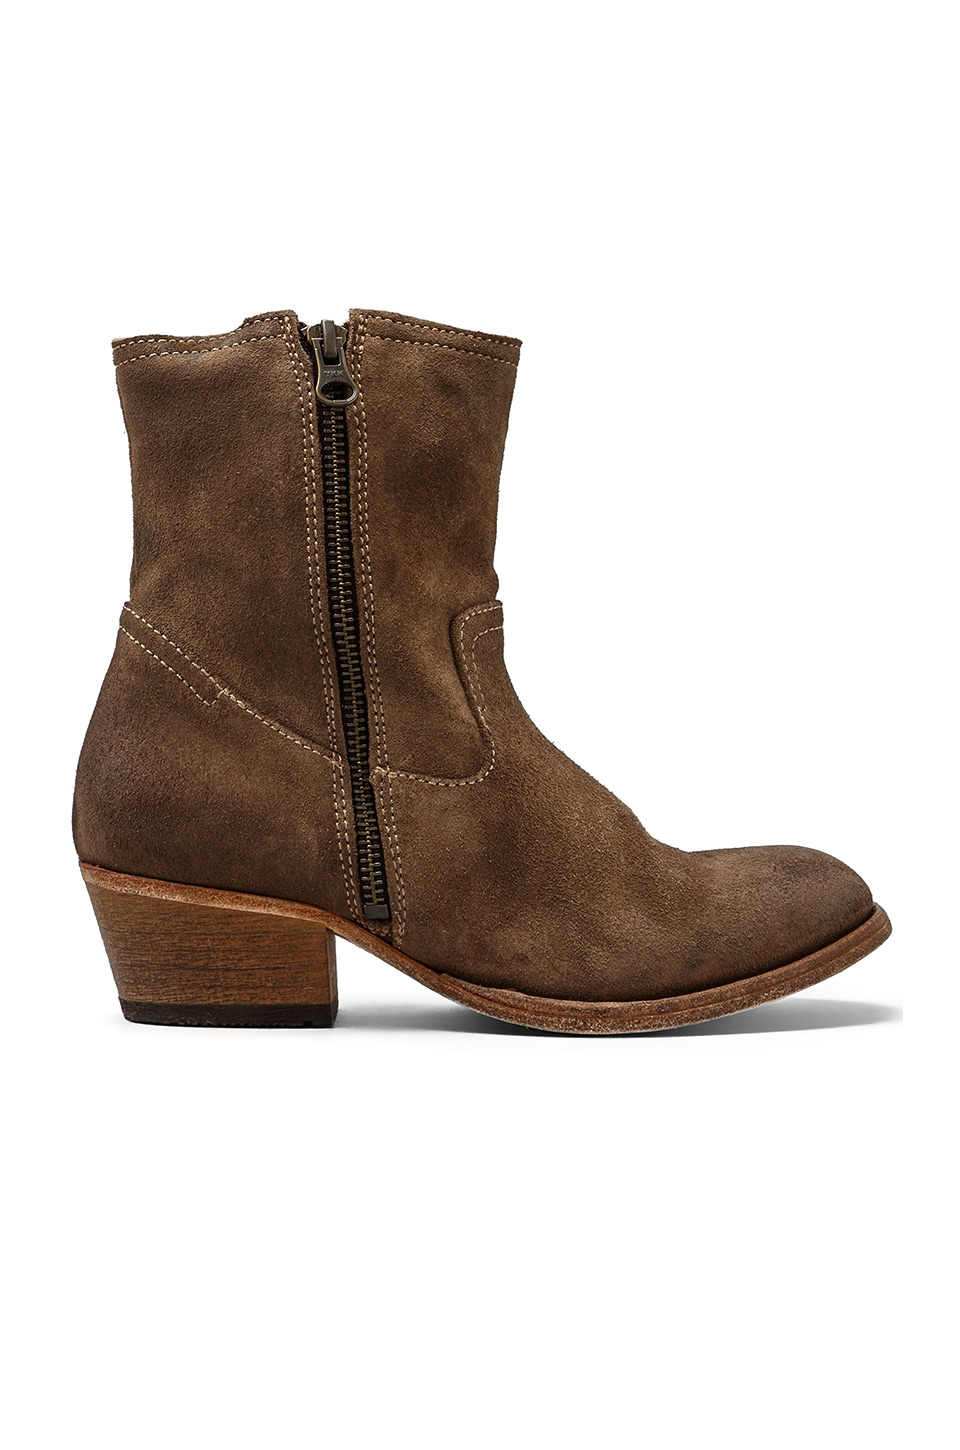 H by Hudson Riley Suede Bootie in Beige